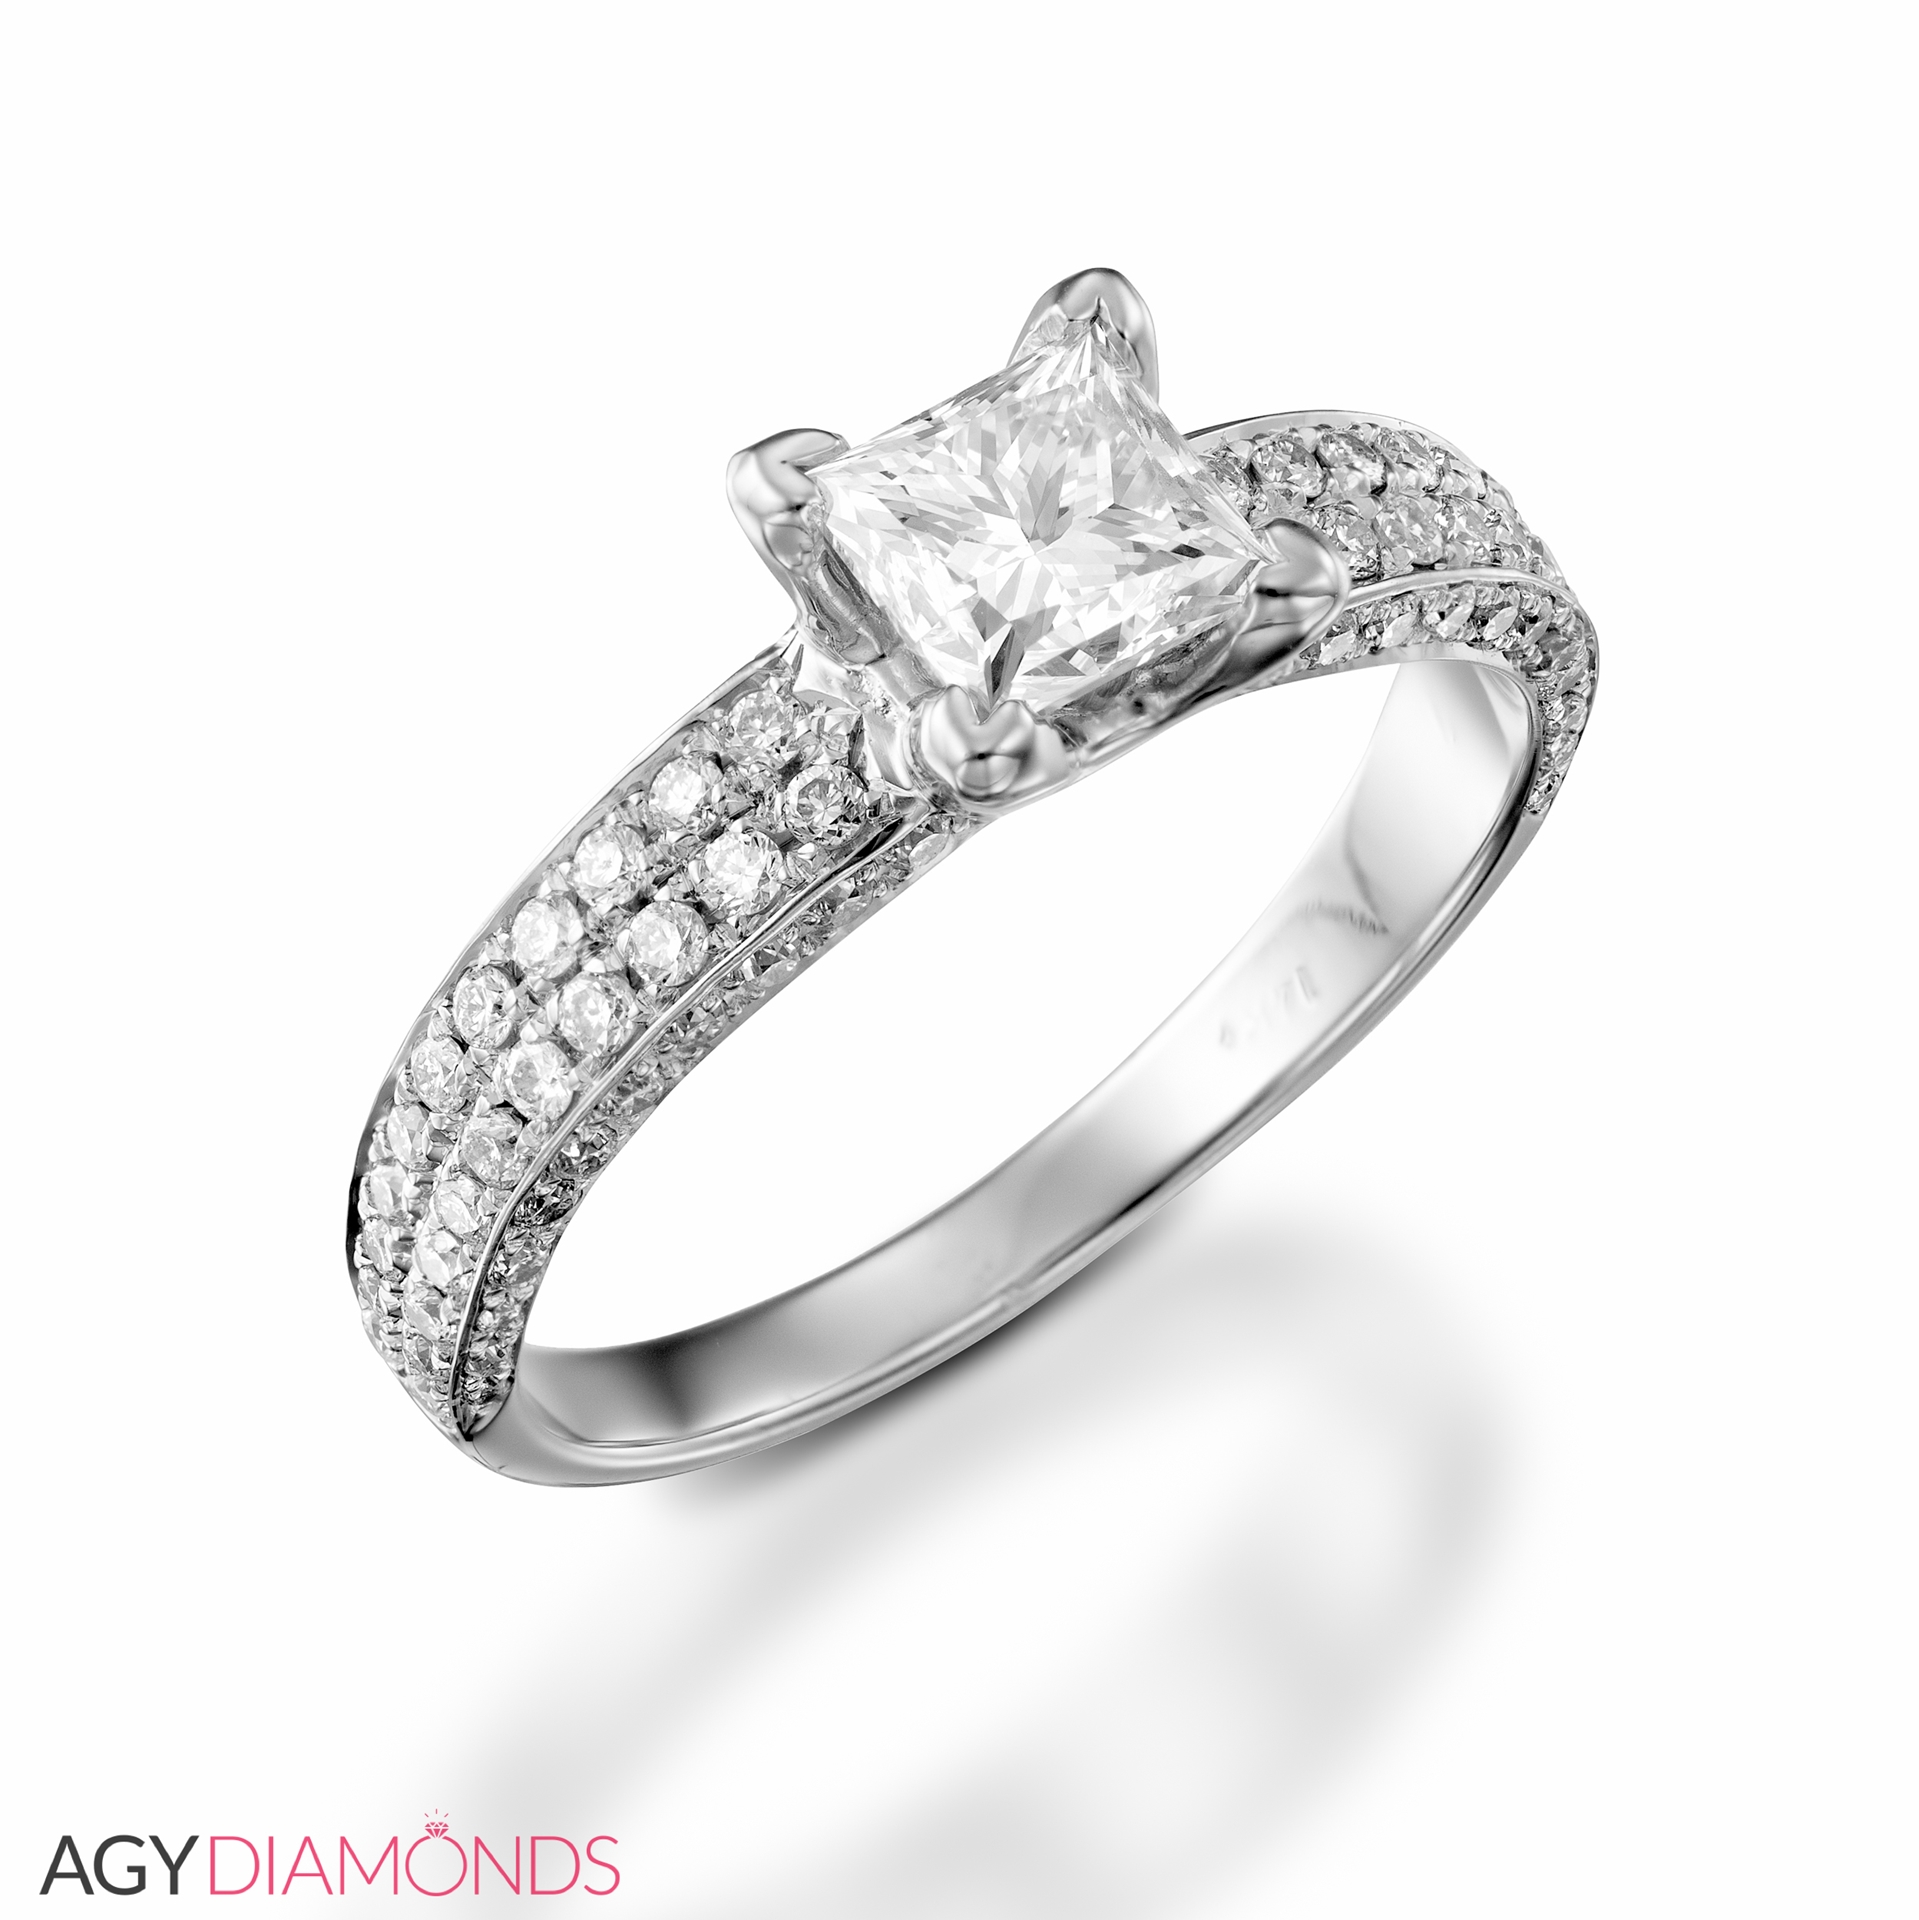 engagement diamond total com rings ring drawing carat agy use designs getdrawings princess free designer at personal for